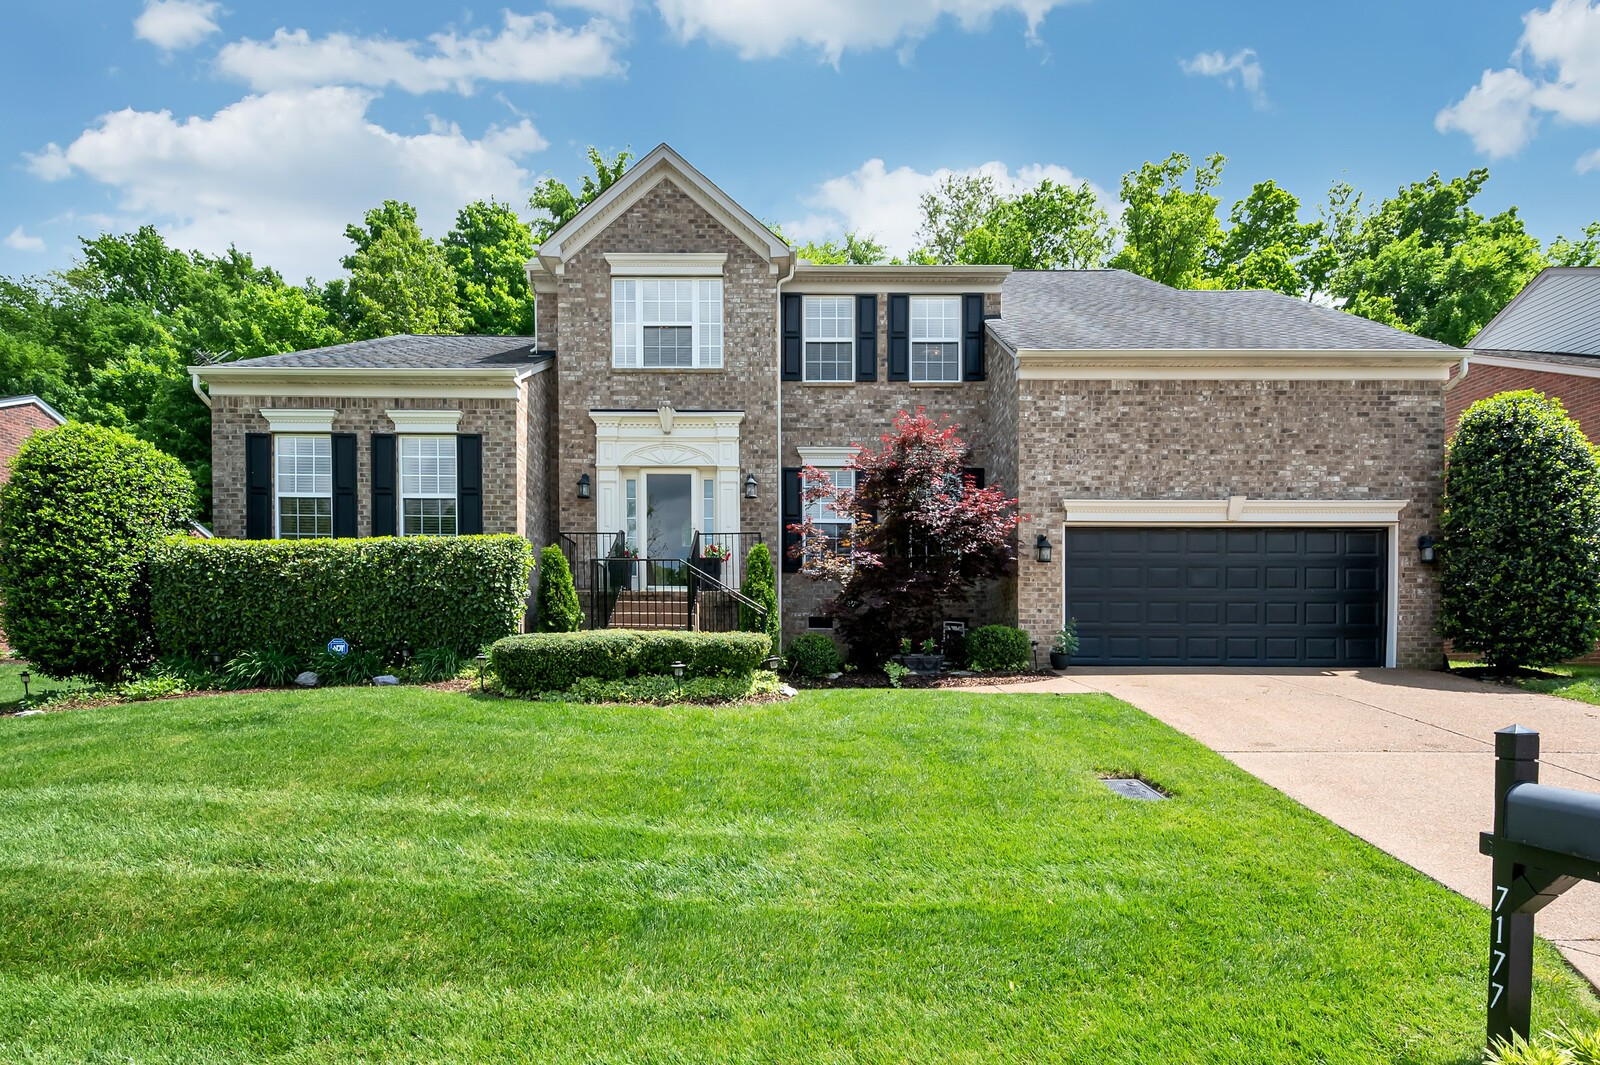 7177 Holt Run Dr Property Photo - Nashville, TN real estate listing